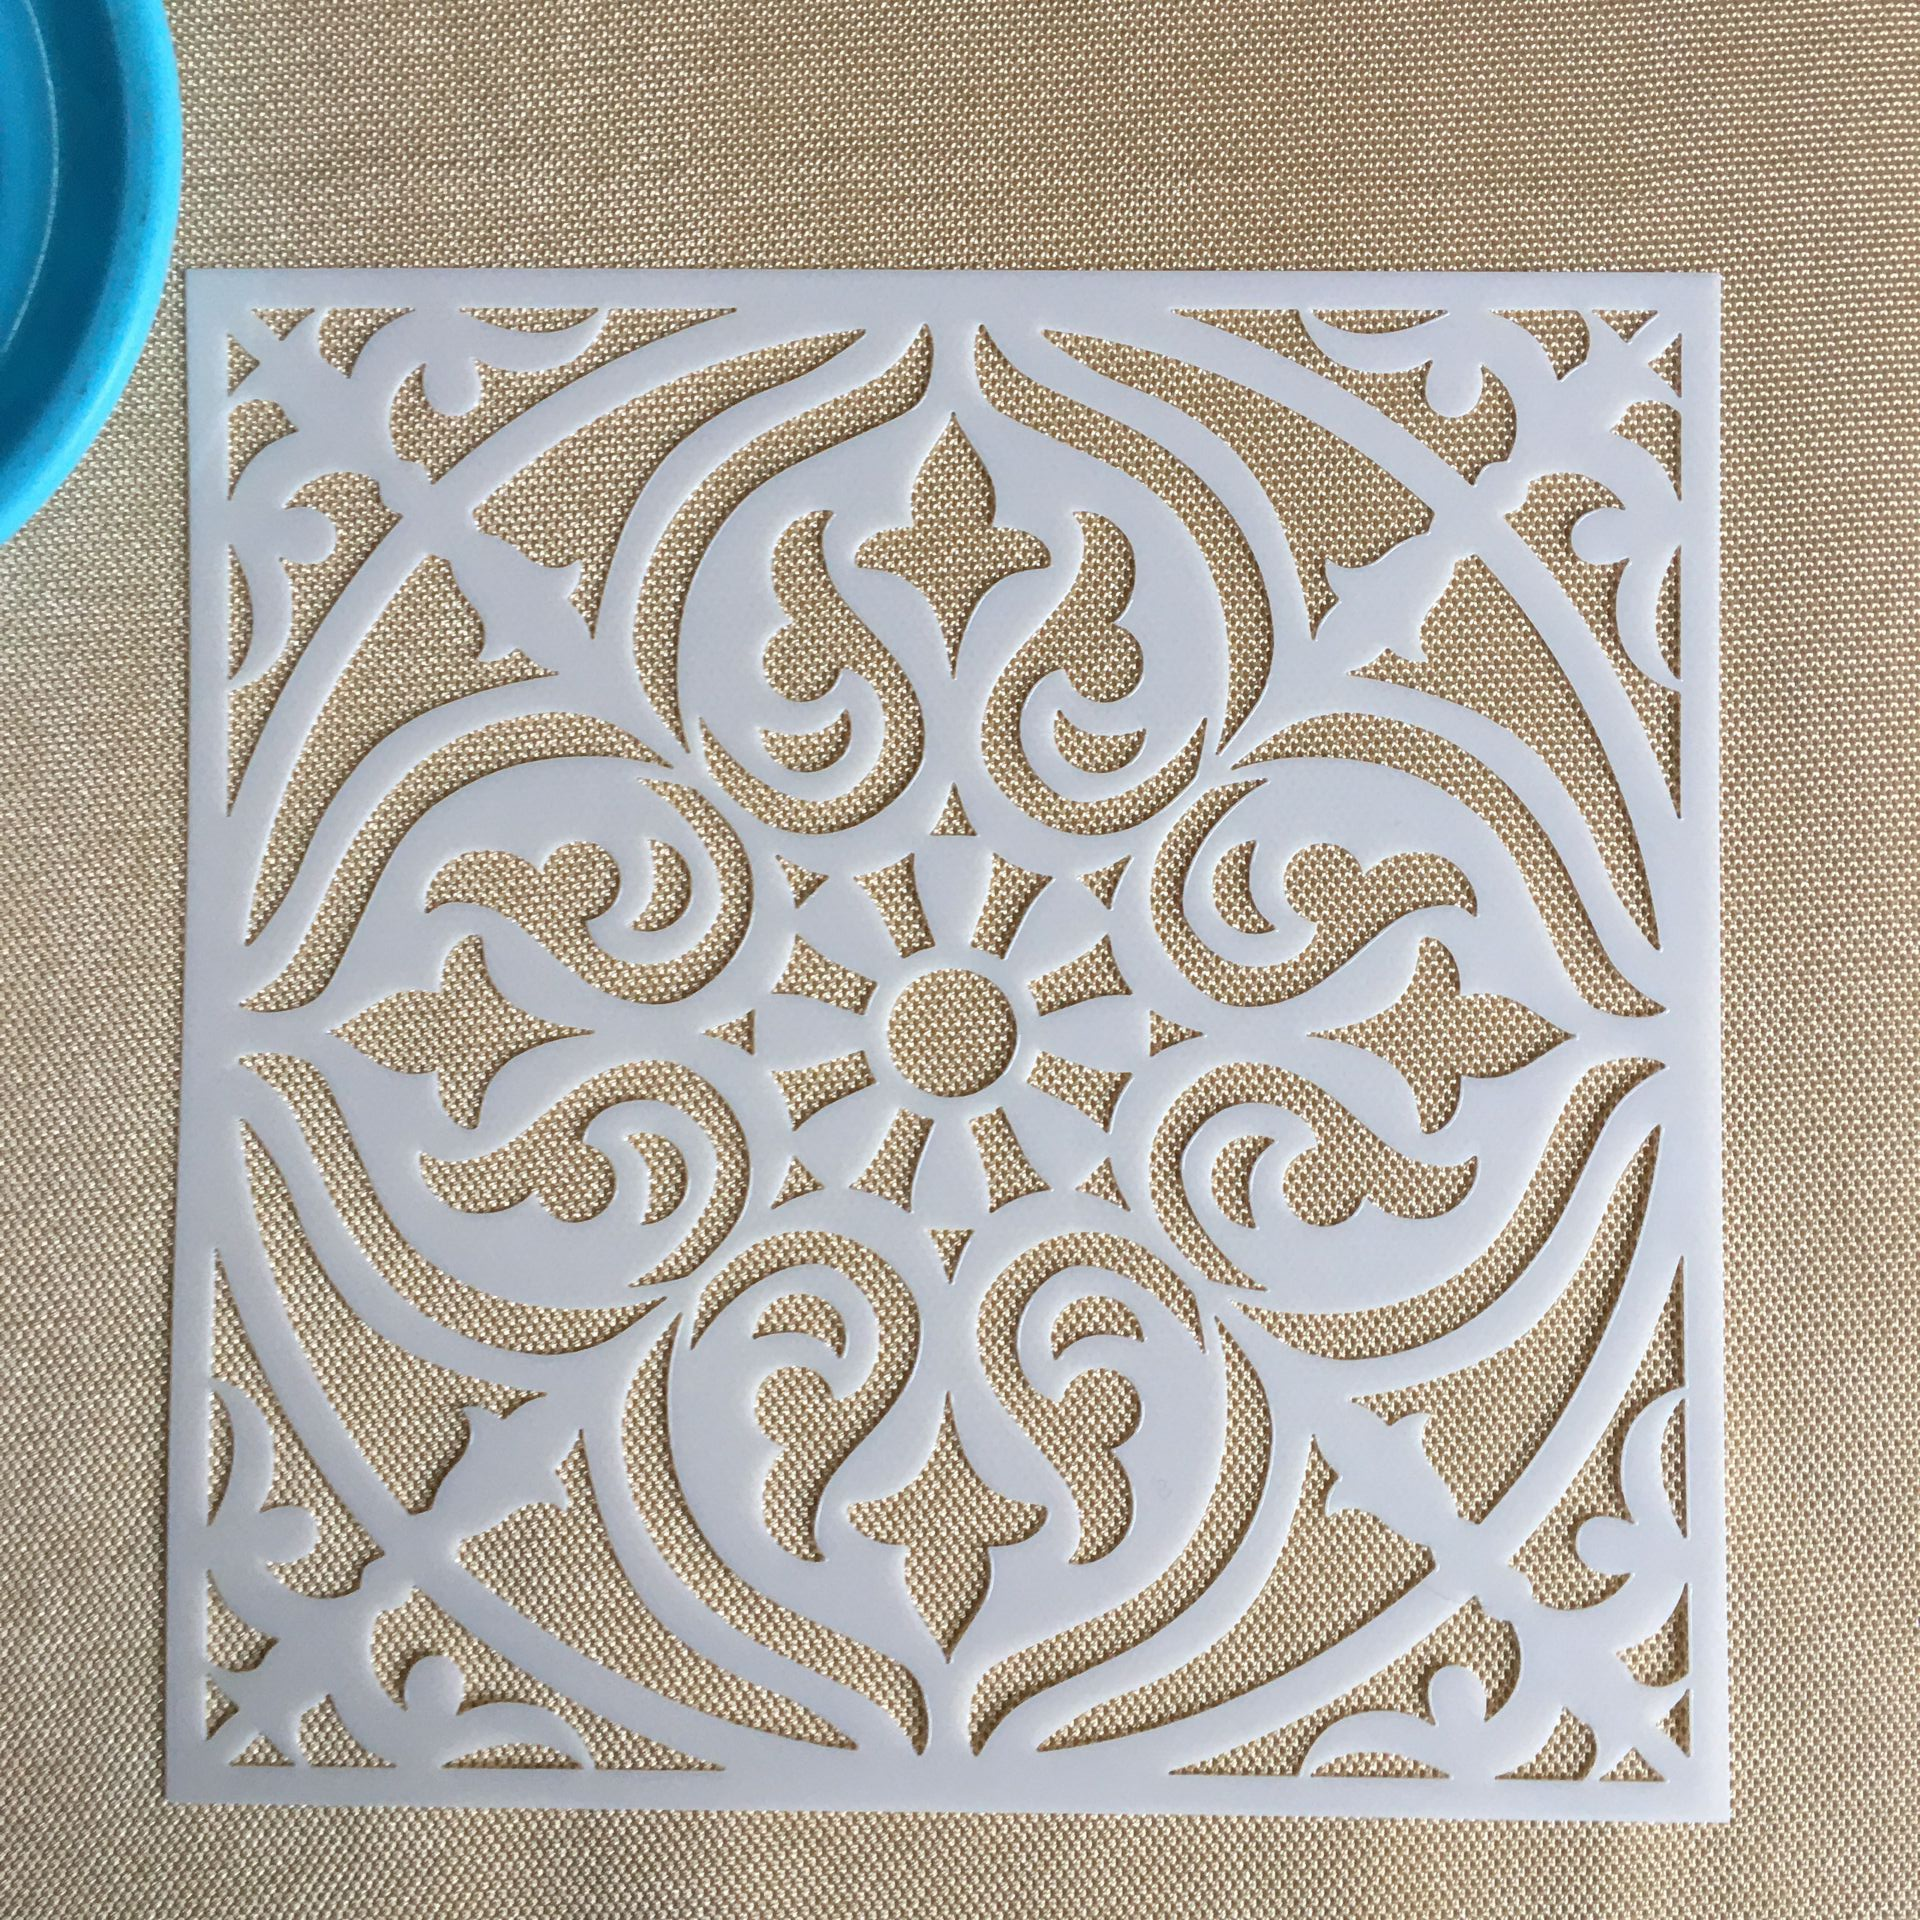 AliExpress - Mandala 1pc 15 * 15cm  mold DIY home decoration drawing template laser cutting wall template painting tile tiles stencil